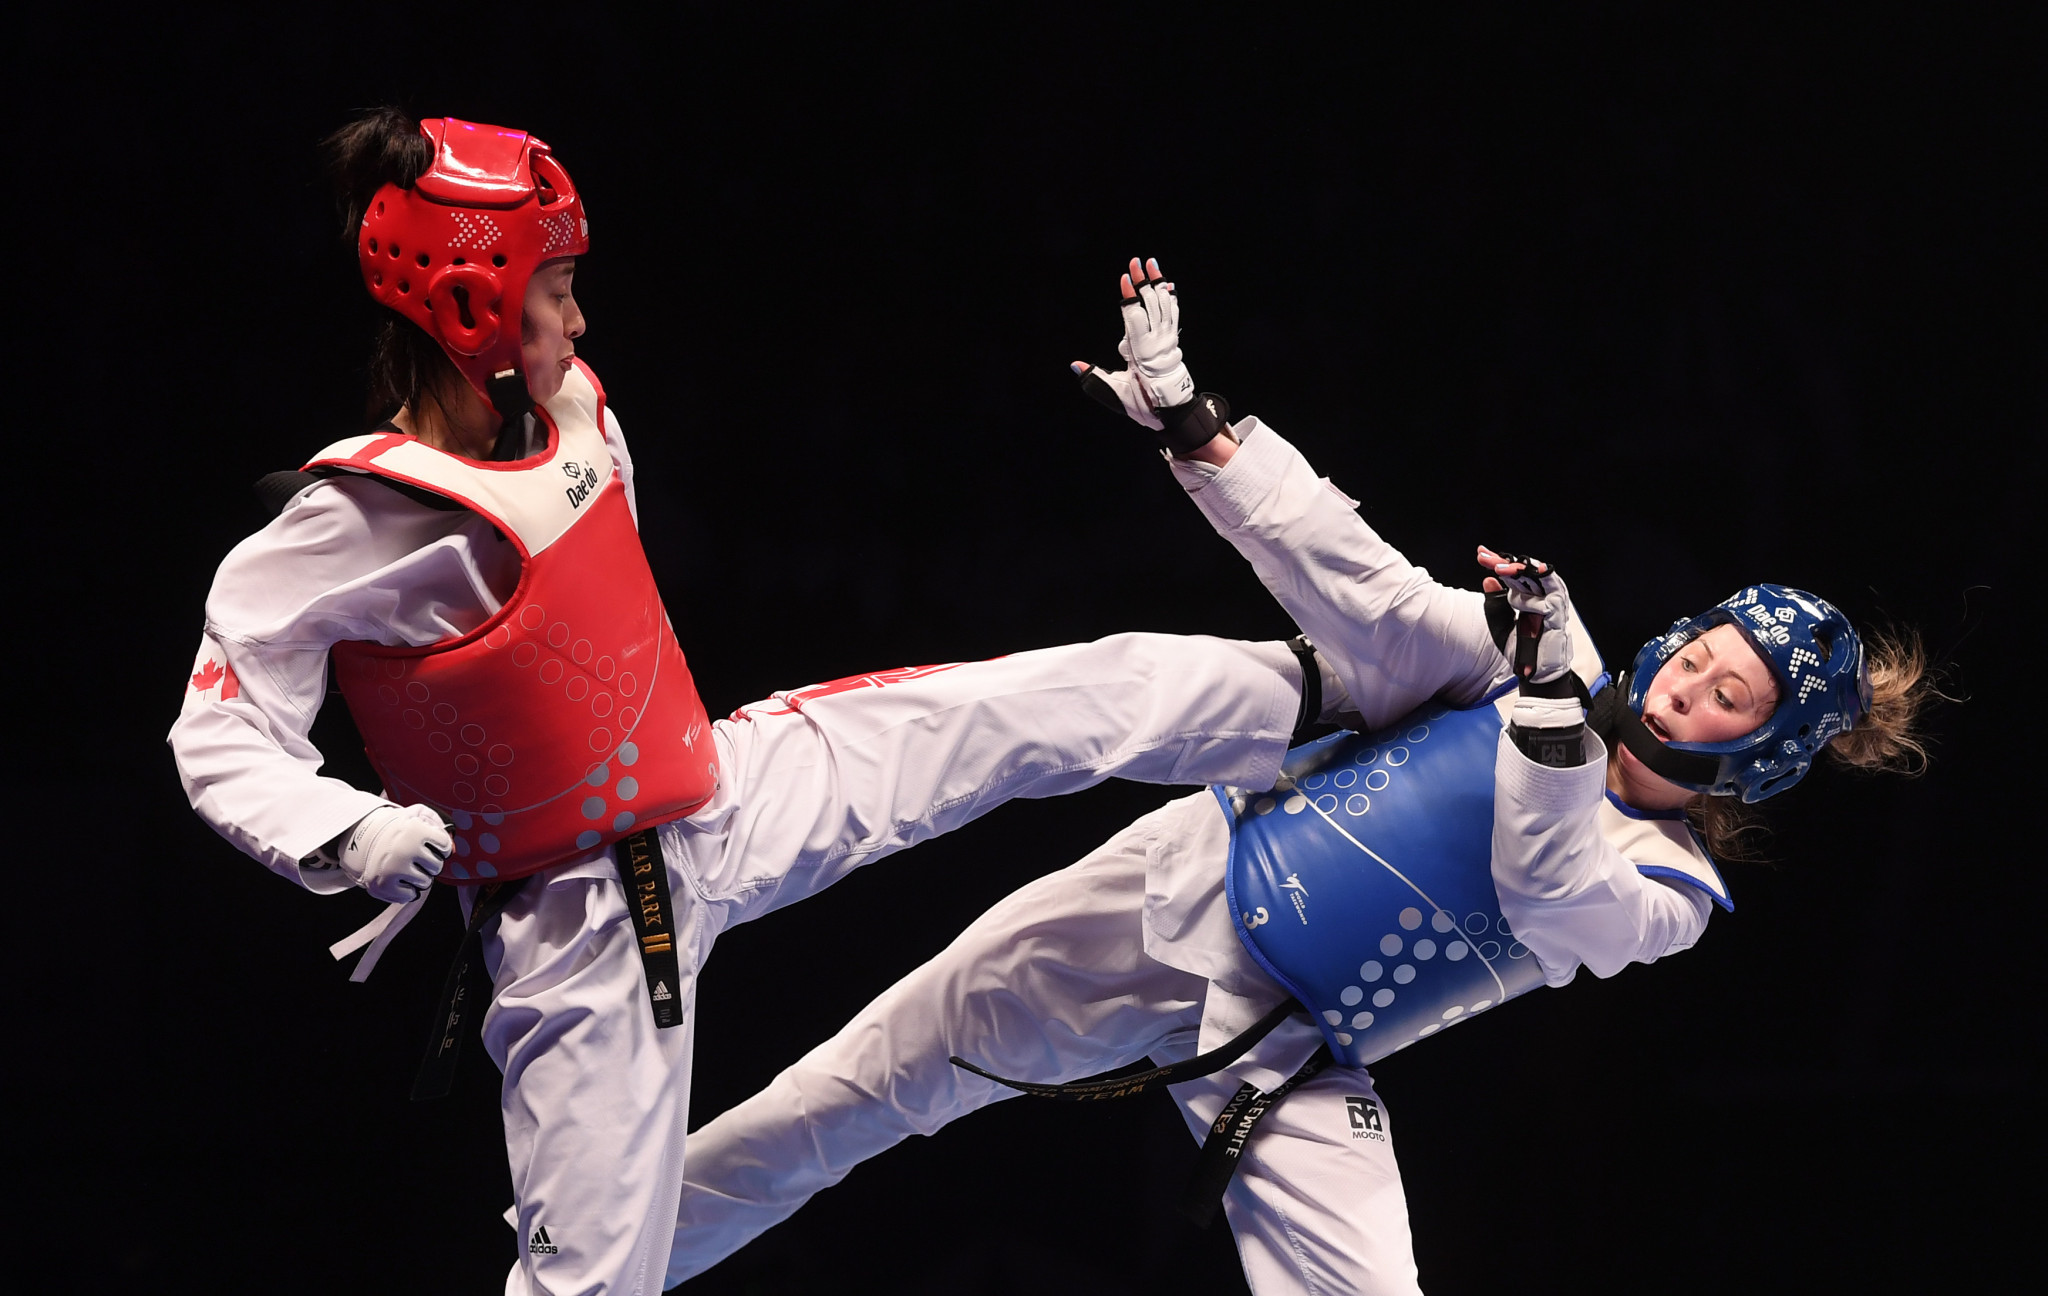 The new-look Board of Directors is responsible for guiding Taekwondo Canada into the future ©Getty Images